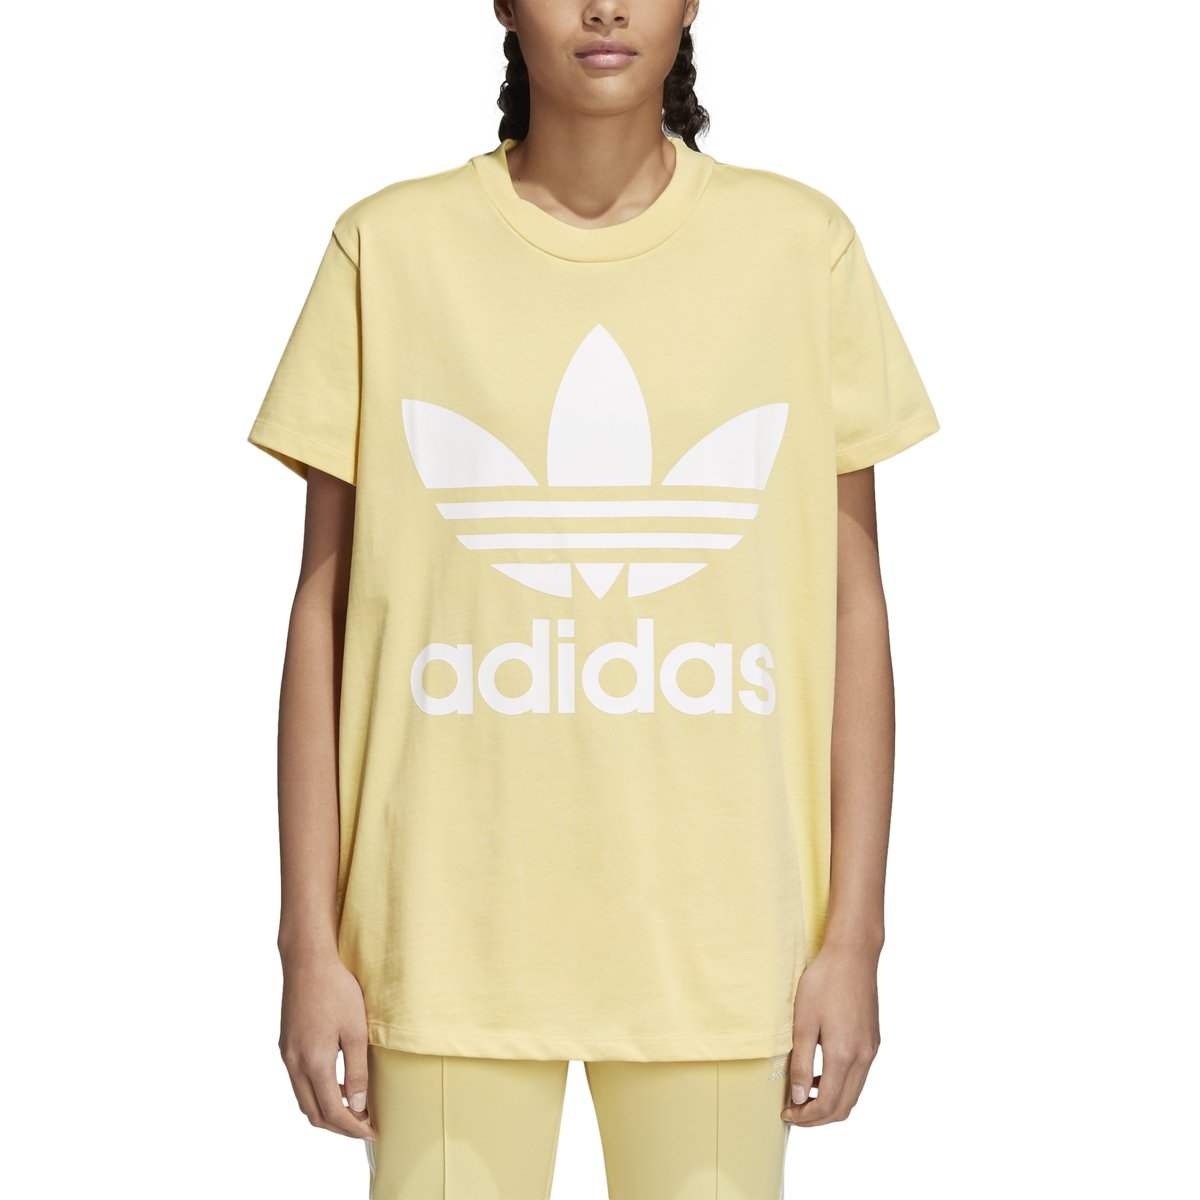 adidas Women's Originals Big Trefoil Logo Tee (M, Sand)